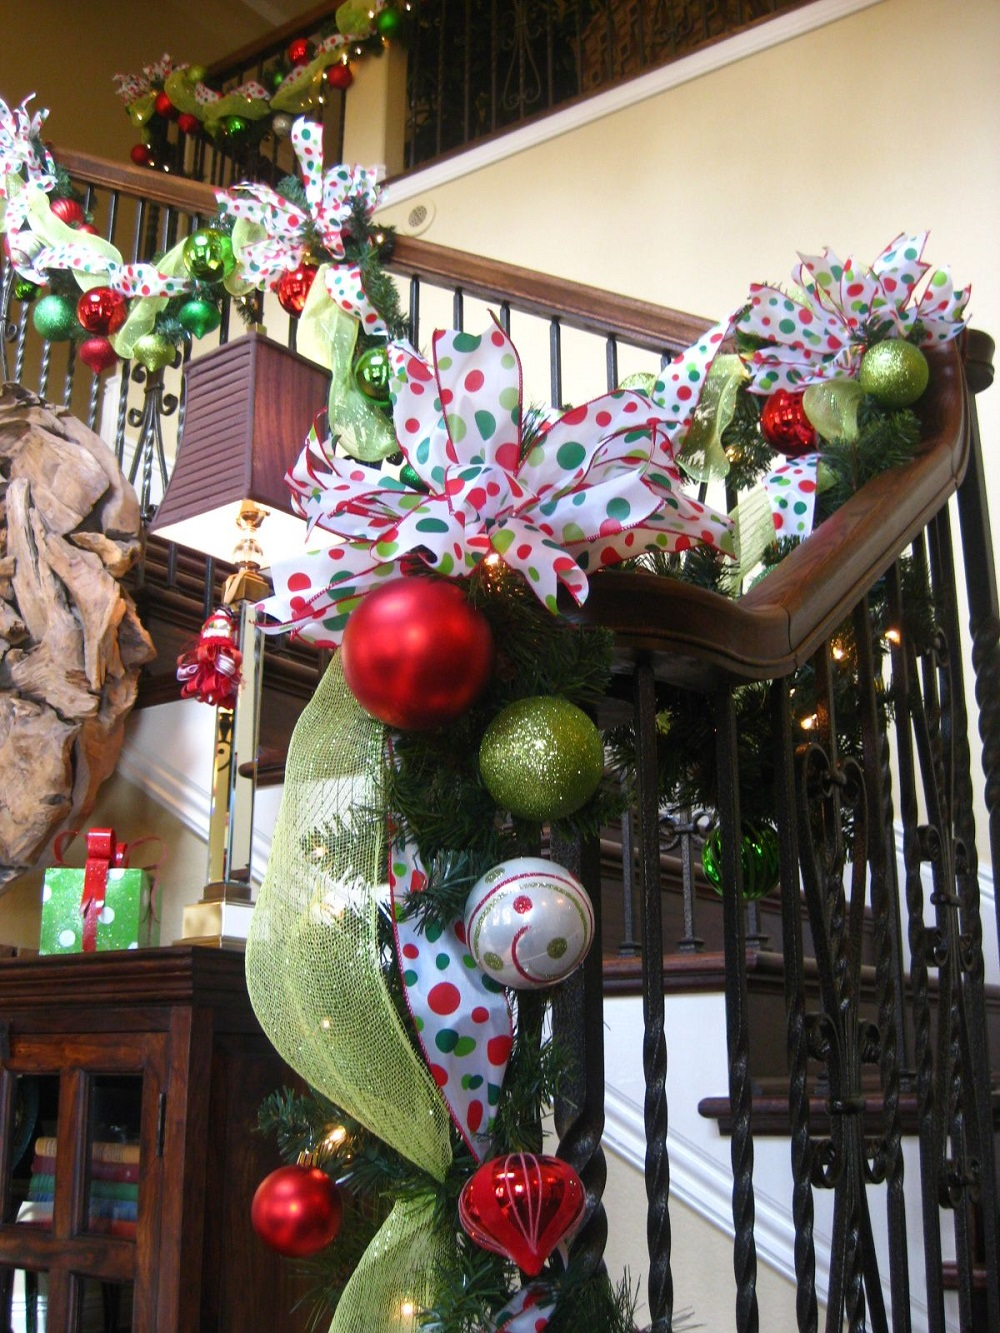 t3-130 Great decoration ideas for Christmas stairs that you should definitely try